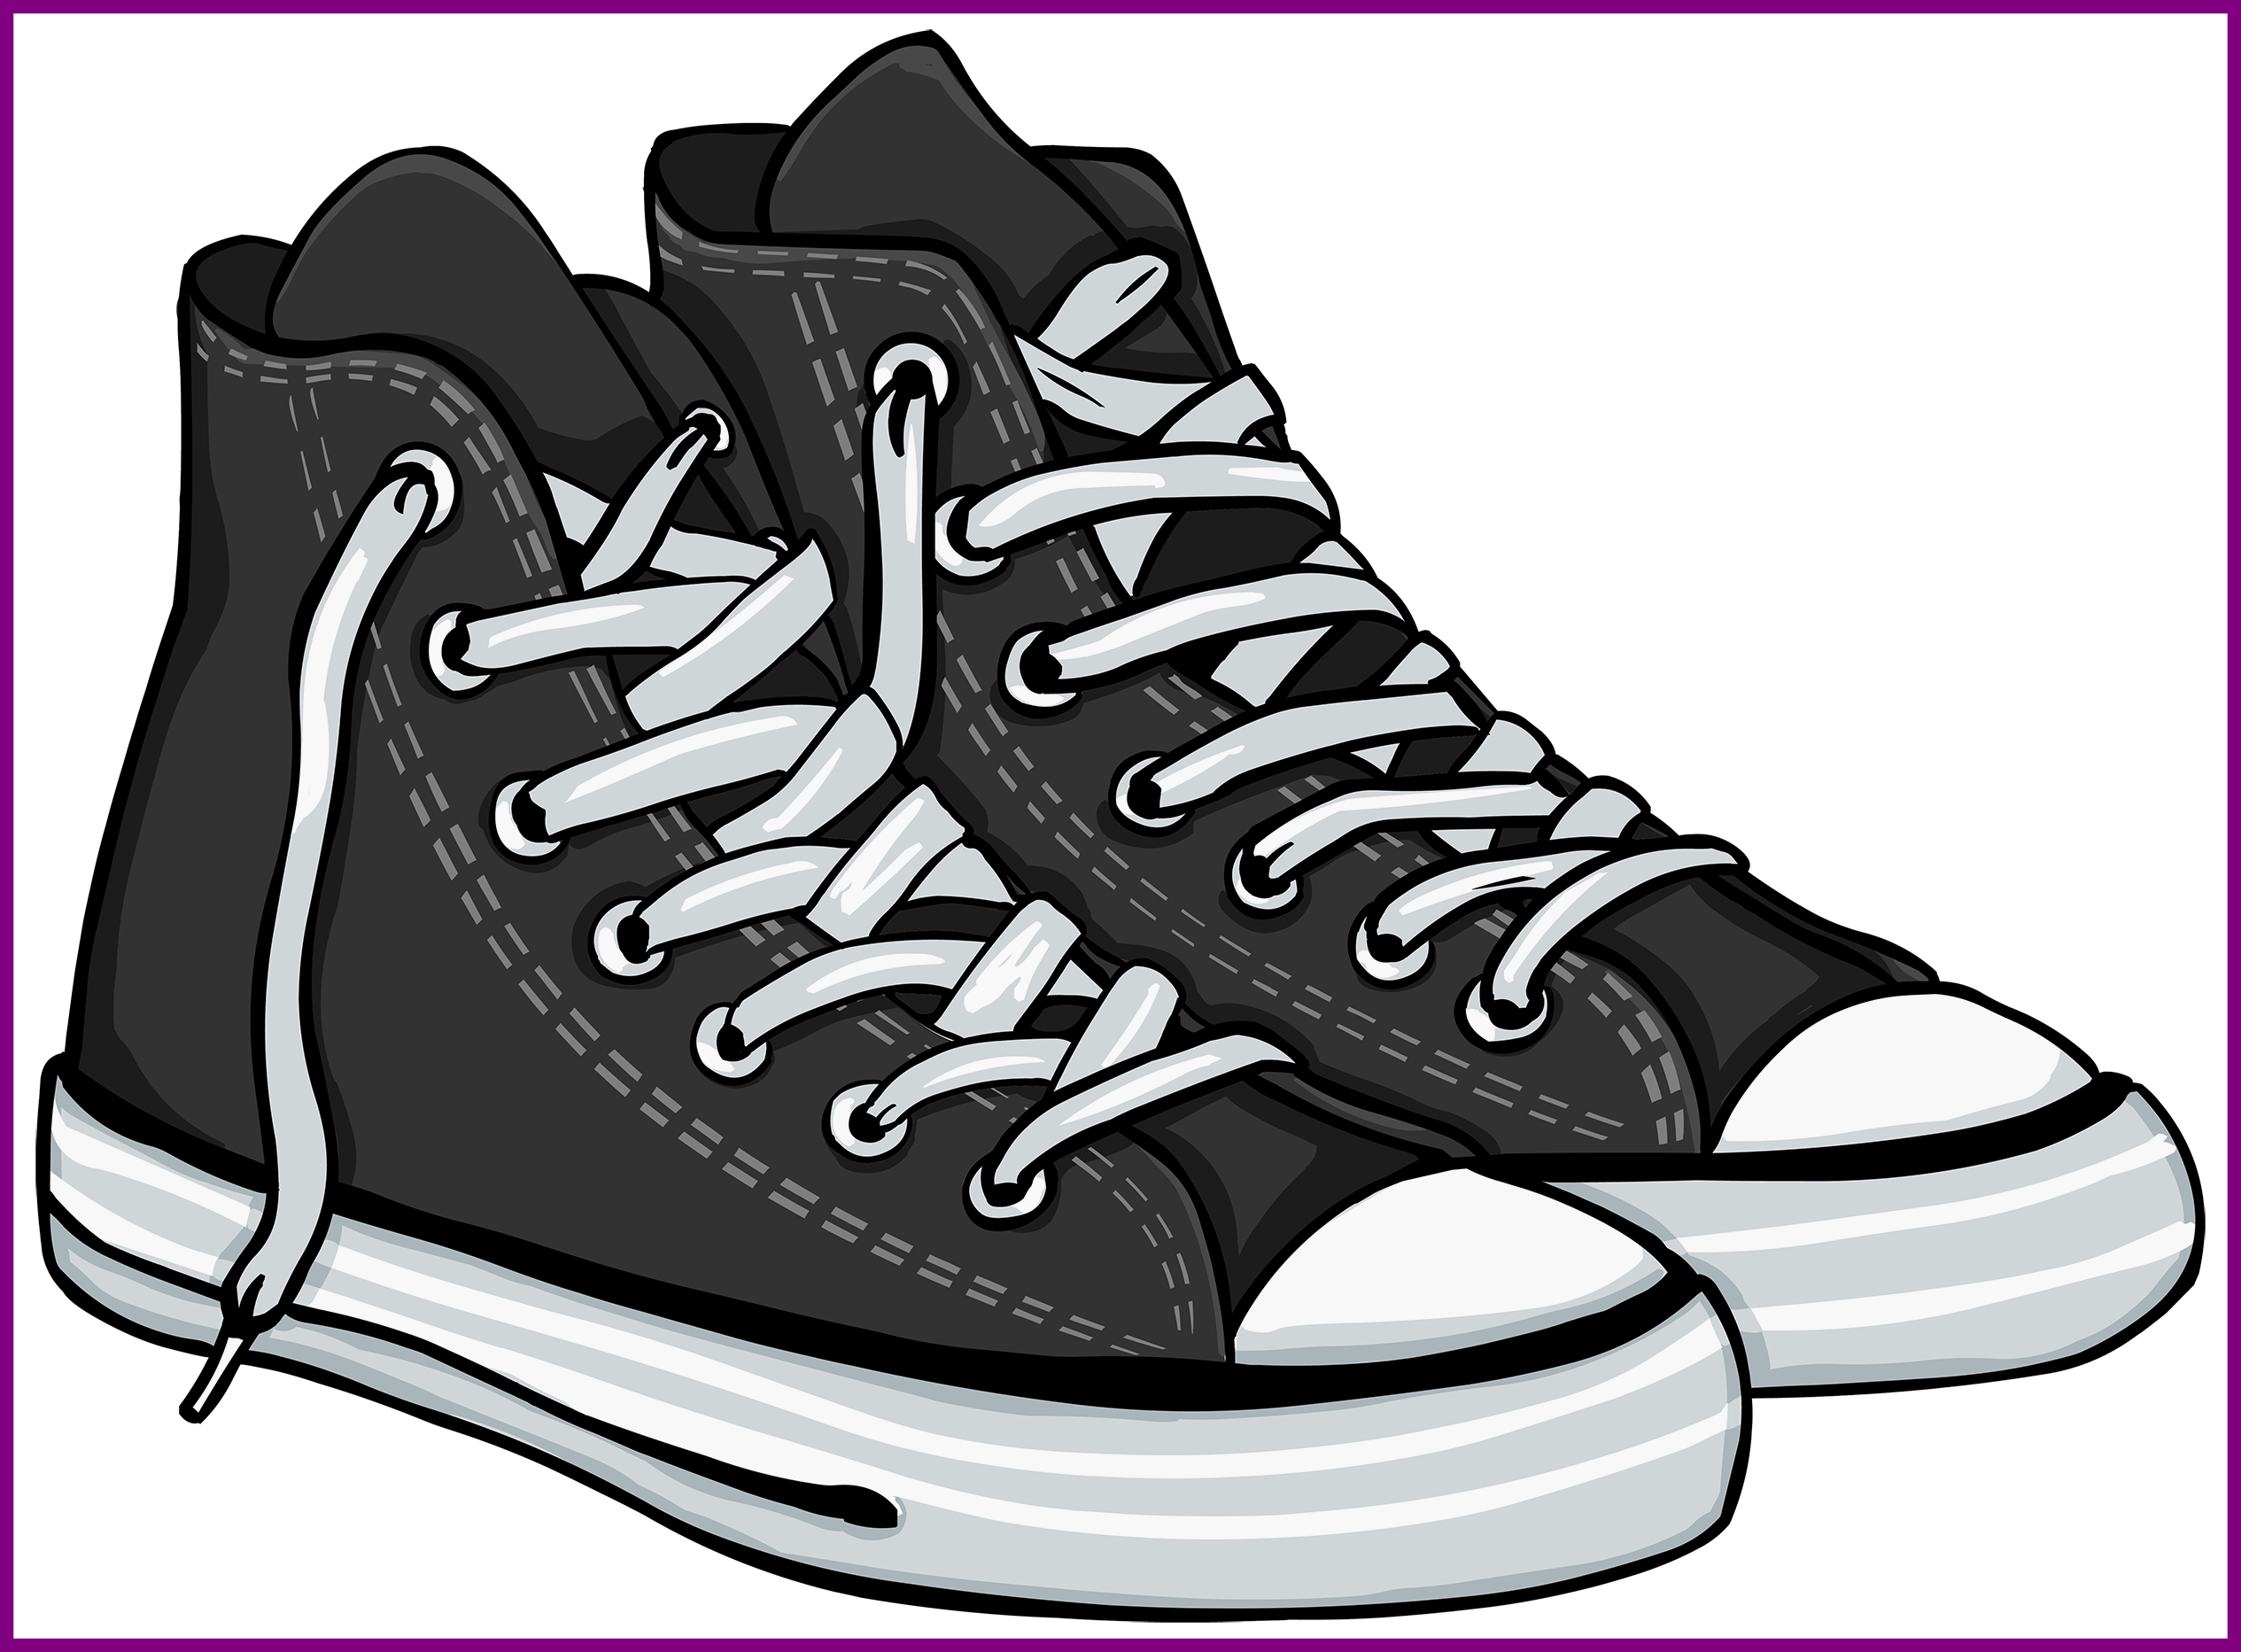 Basketball and shoes clipart picture freeuse stock Stunning Clip Art Flip Flop Border Pics For Shoes Clipart Style And ... picture freeuse stock